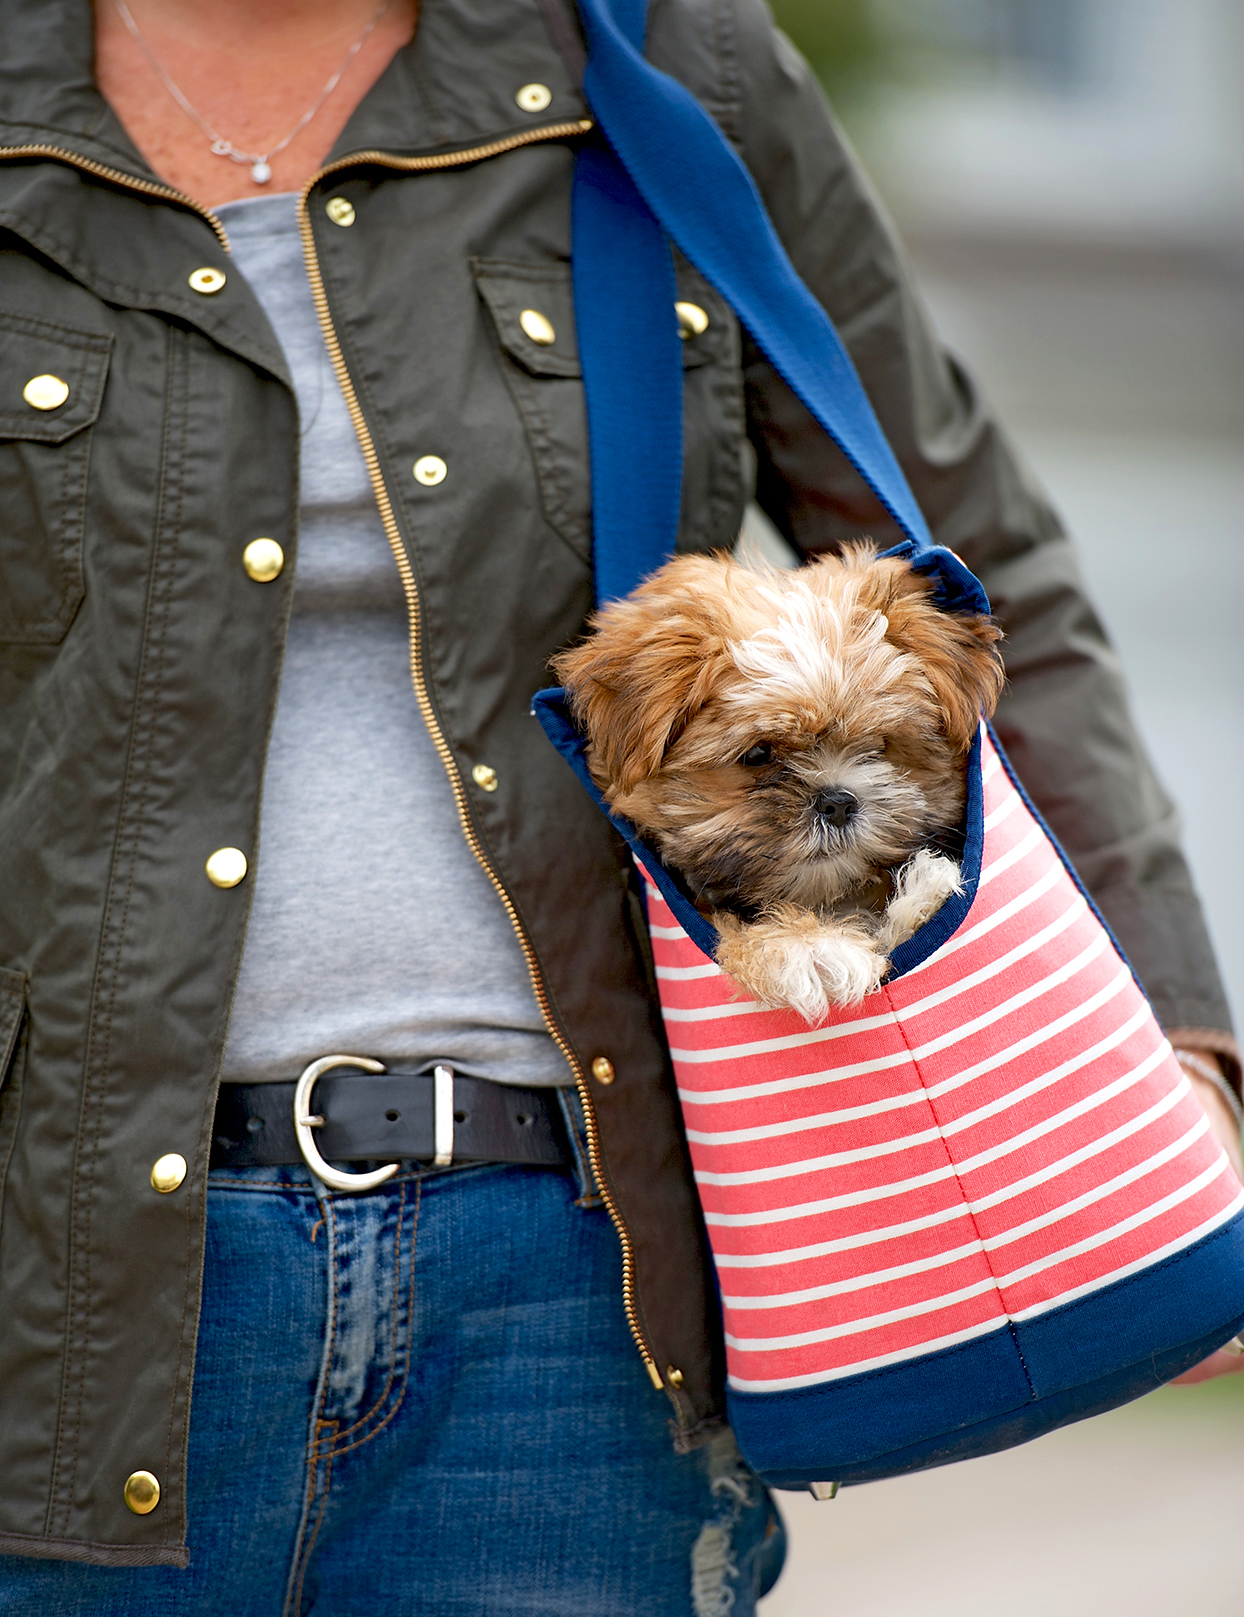 Brown and blonde shorkie pokes head out of coral and navy striped tote bag on woman's arm